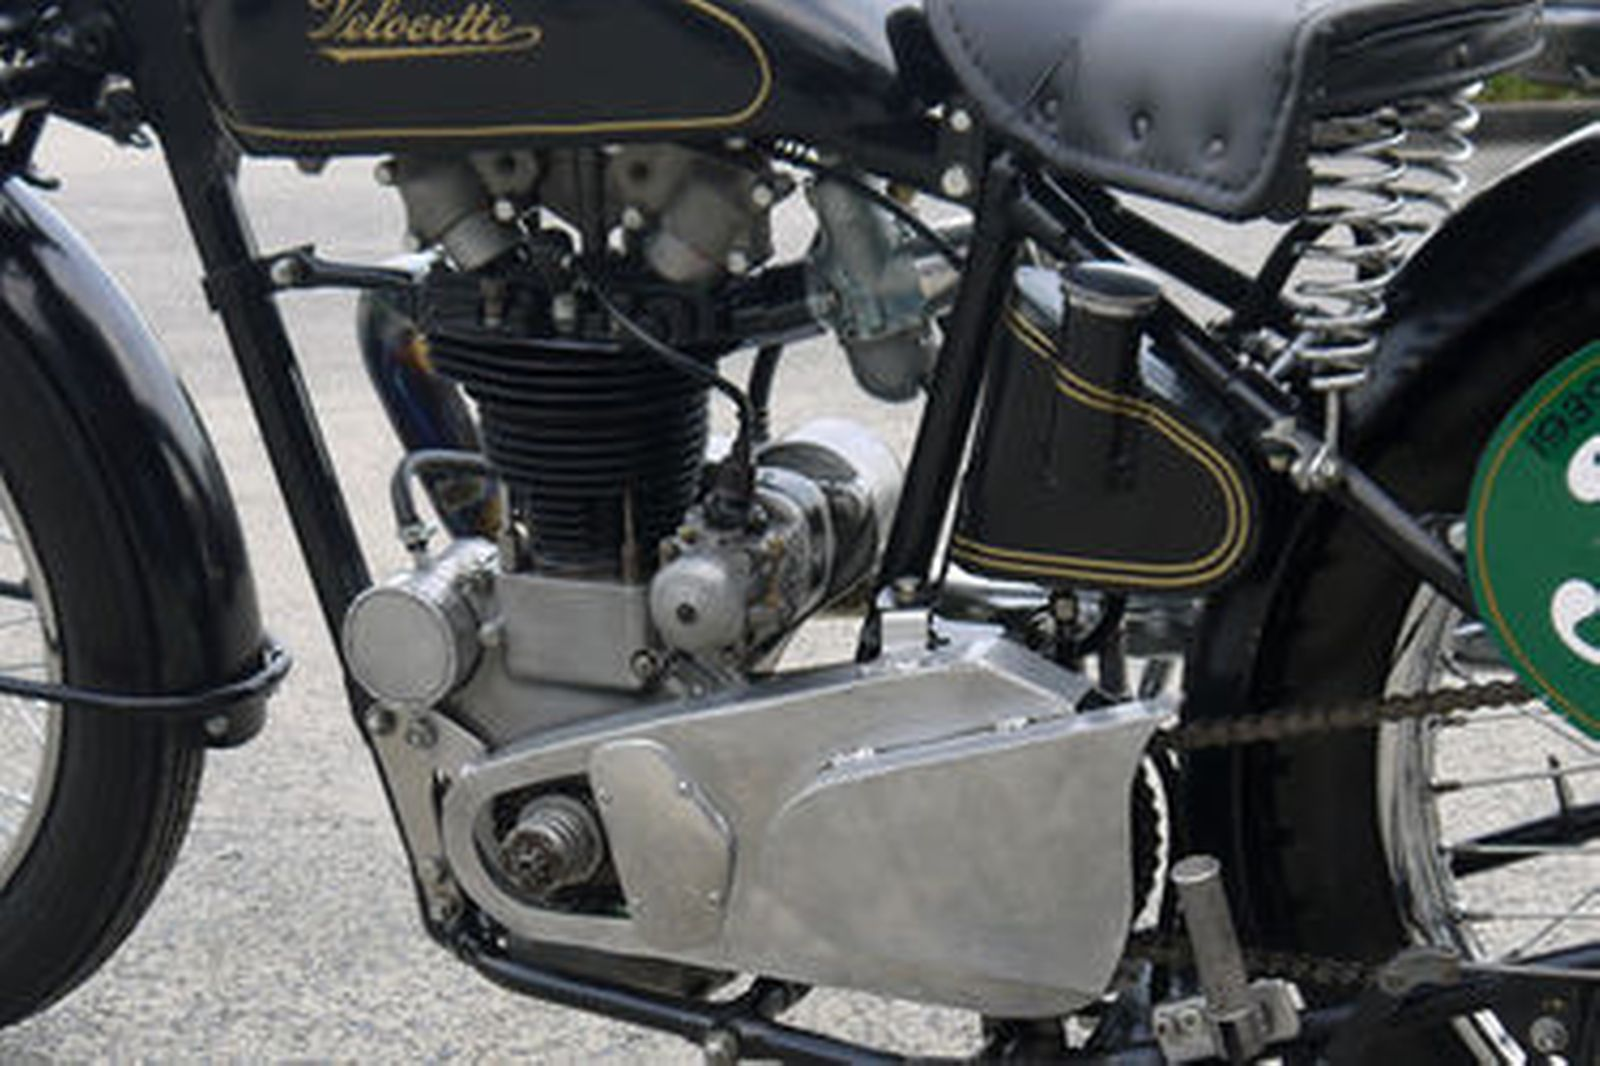 Velocette 350cc Mac Motorcycle